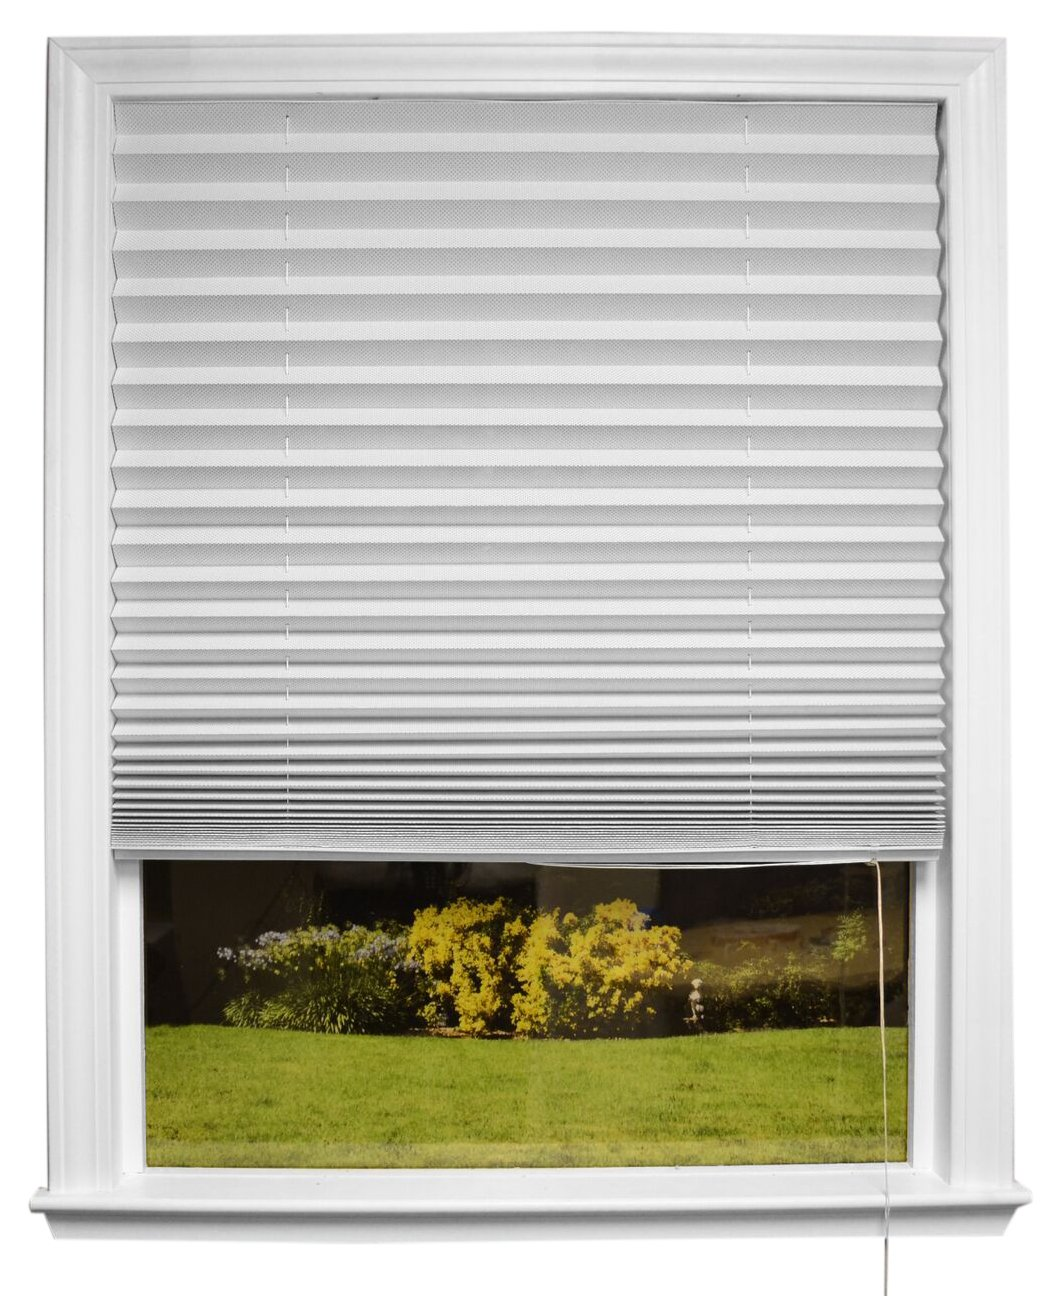 "Original Corded Lift Sheer View Solar Fabric Shade White, 36"" x 72''"